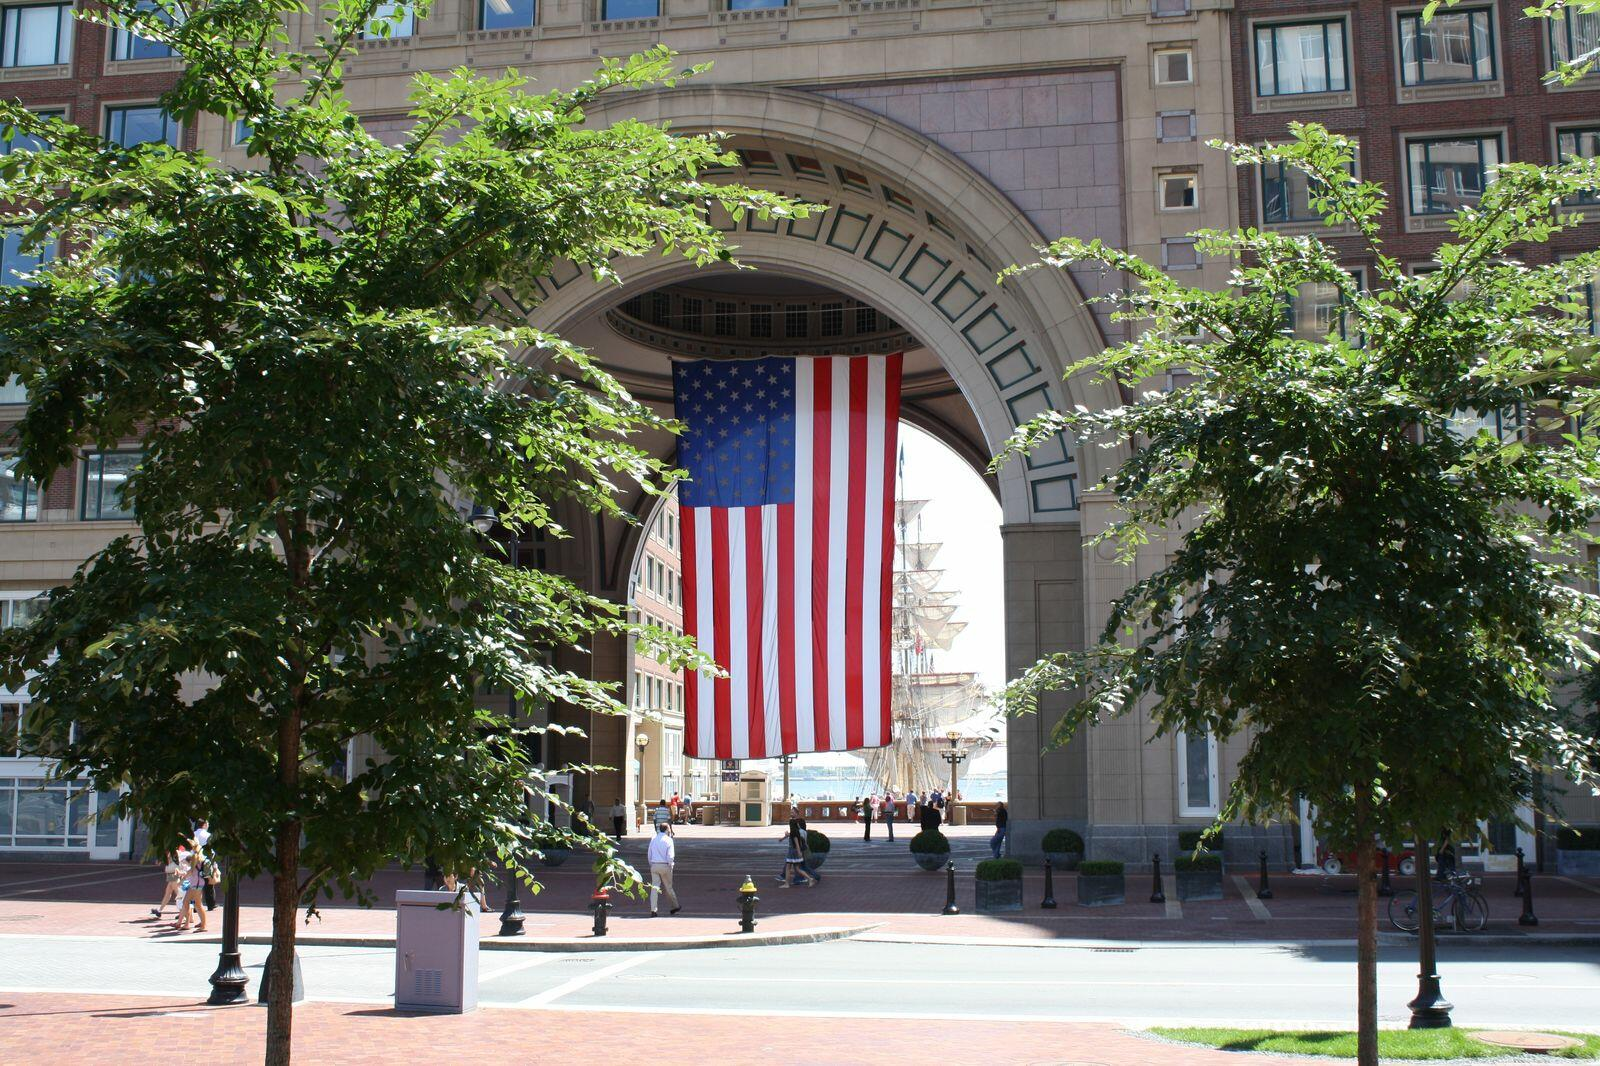 US flag suspended from arch